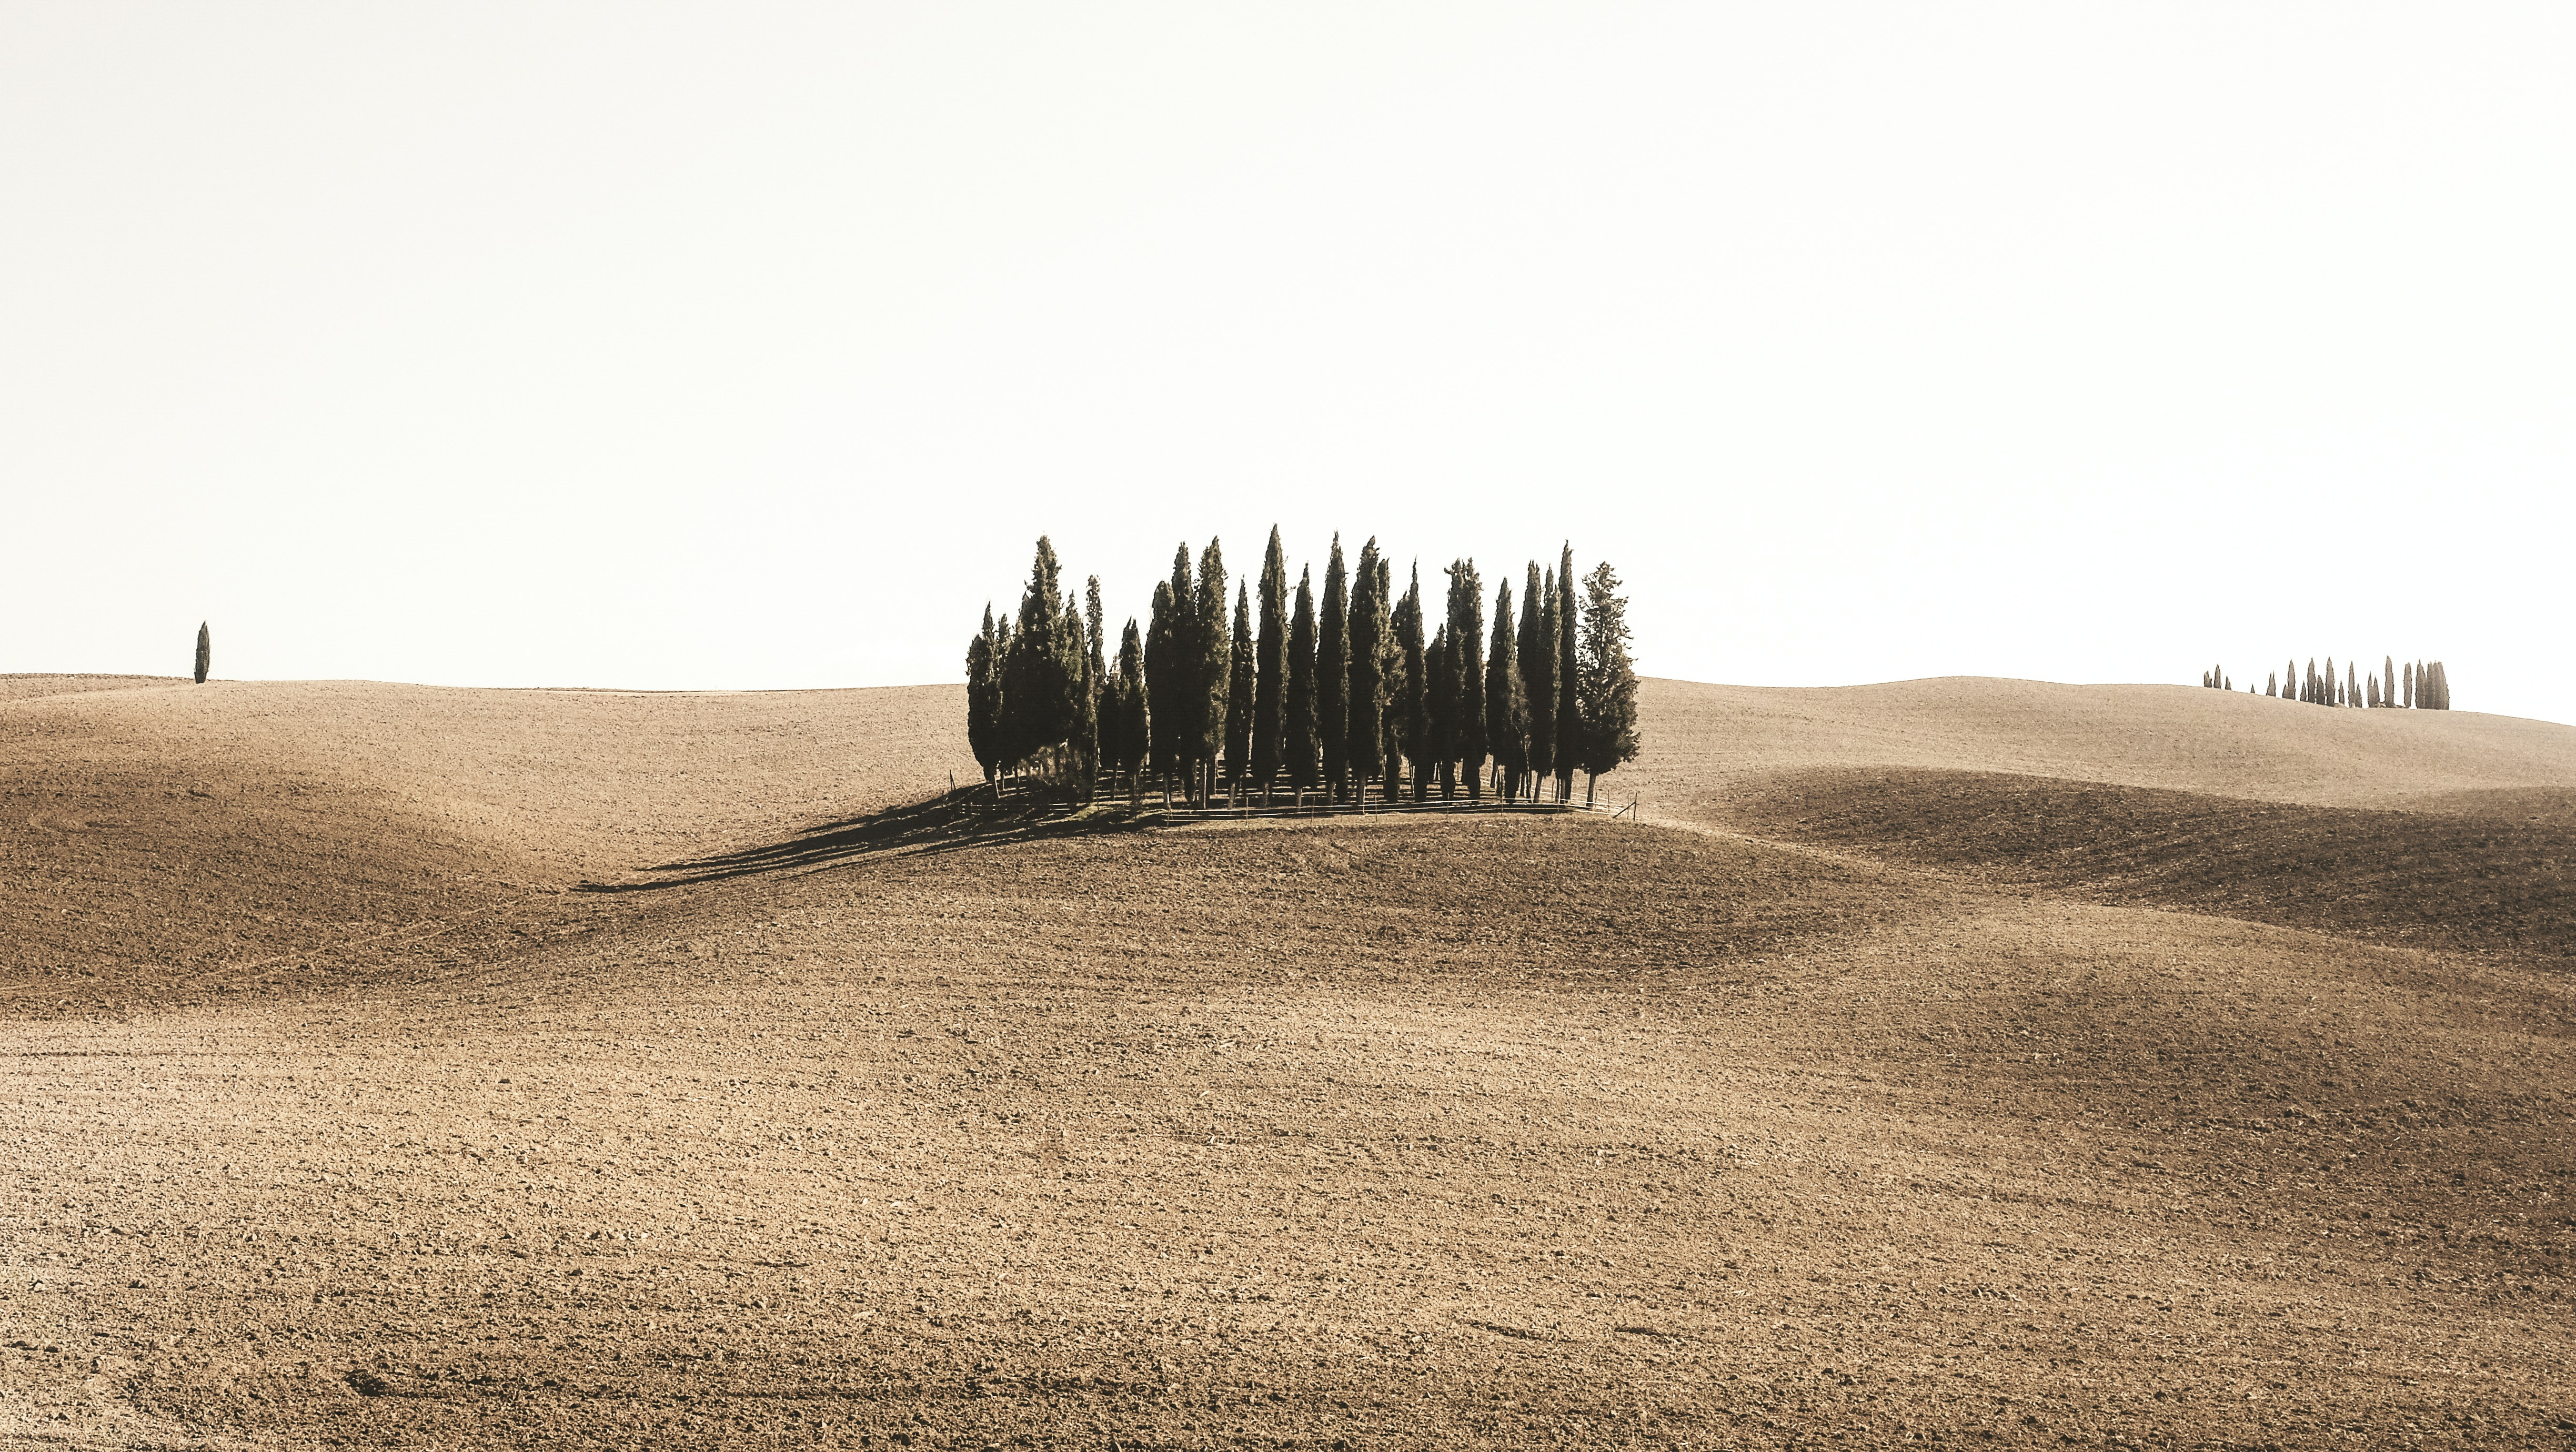 pine trees surrounded by brown field